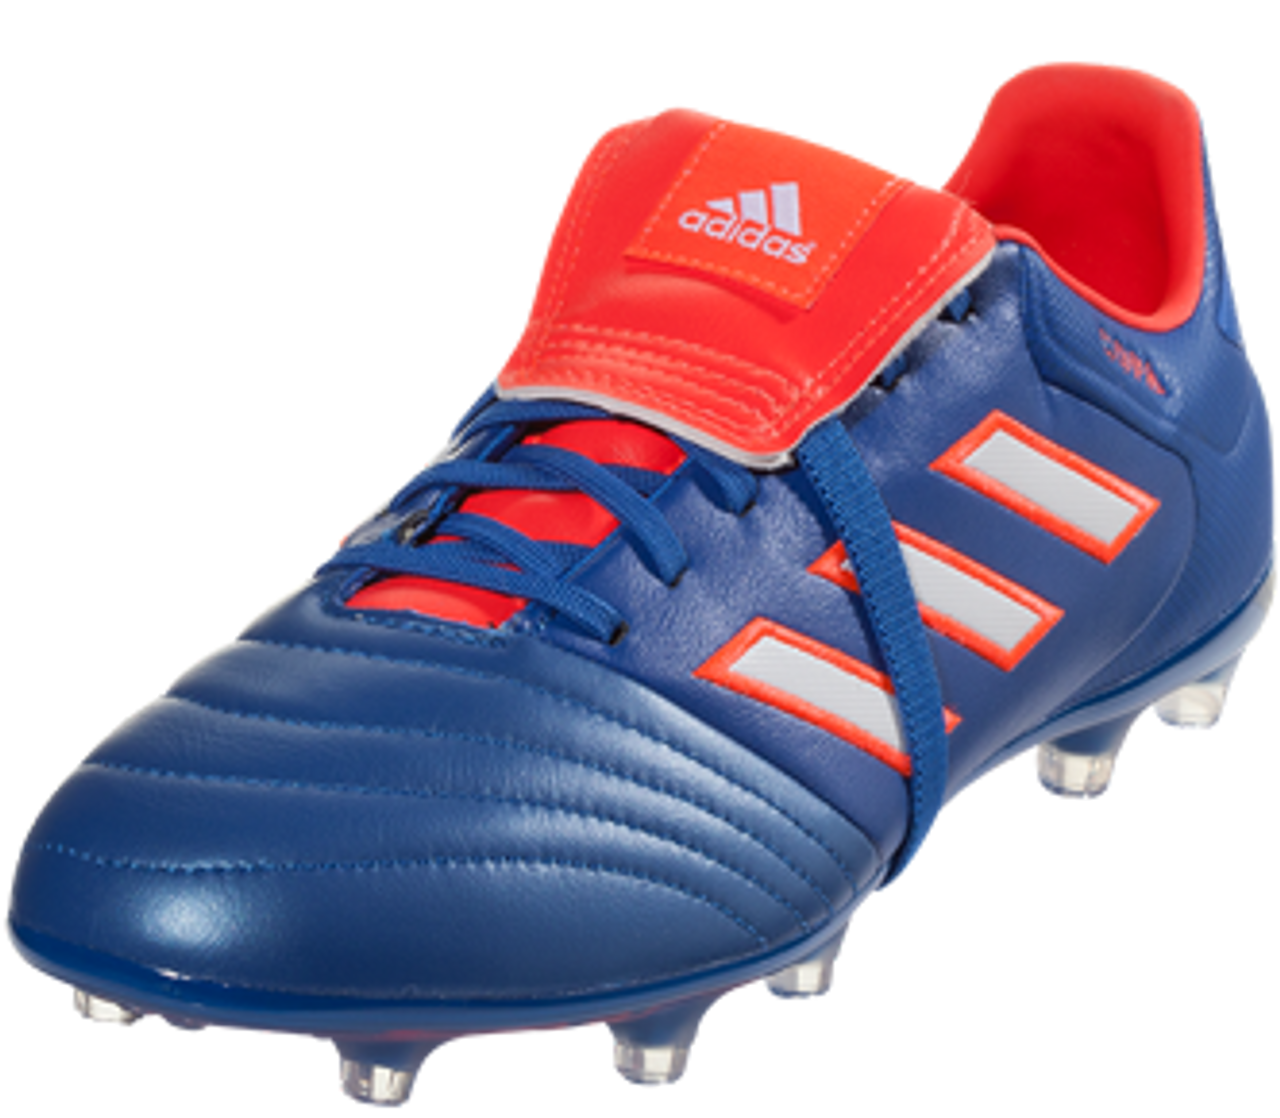 beaff77a2f82 adidas Copa Gloro 17.2 FG Soccer Cleat - Blue/White/Solar Red - Soccer Plus